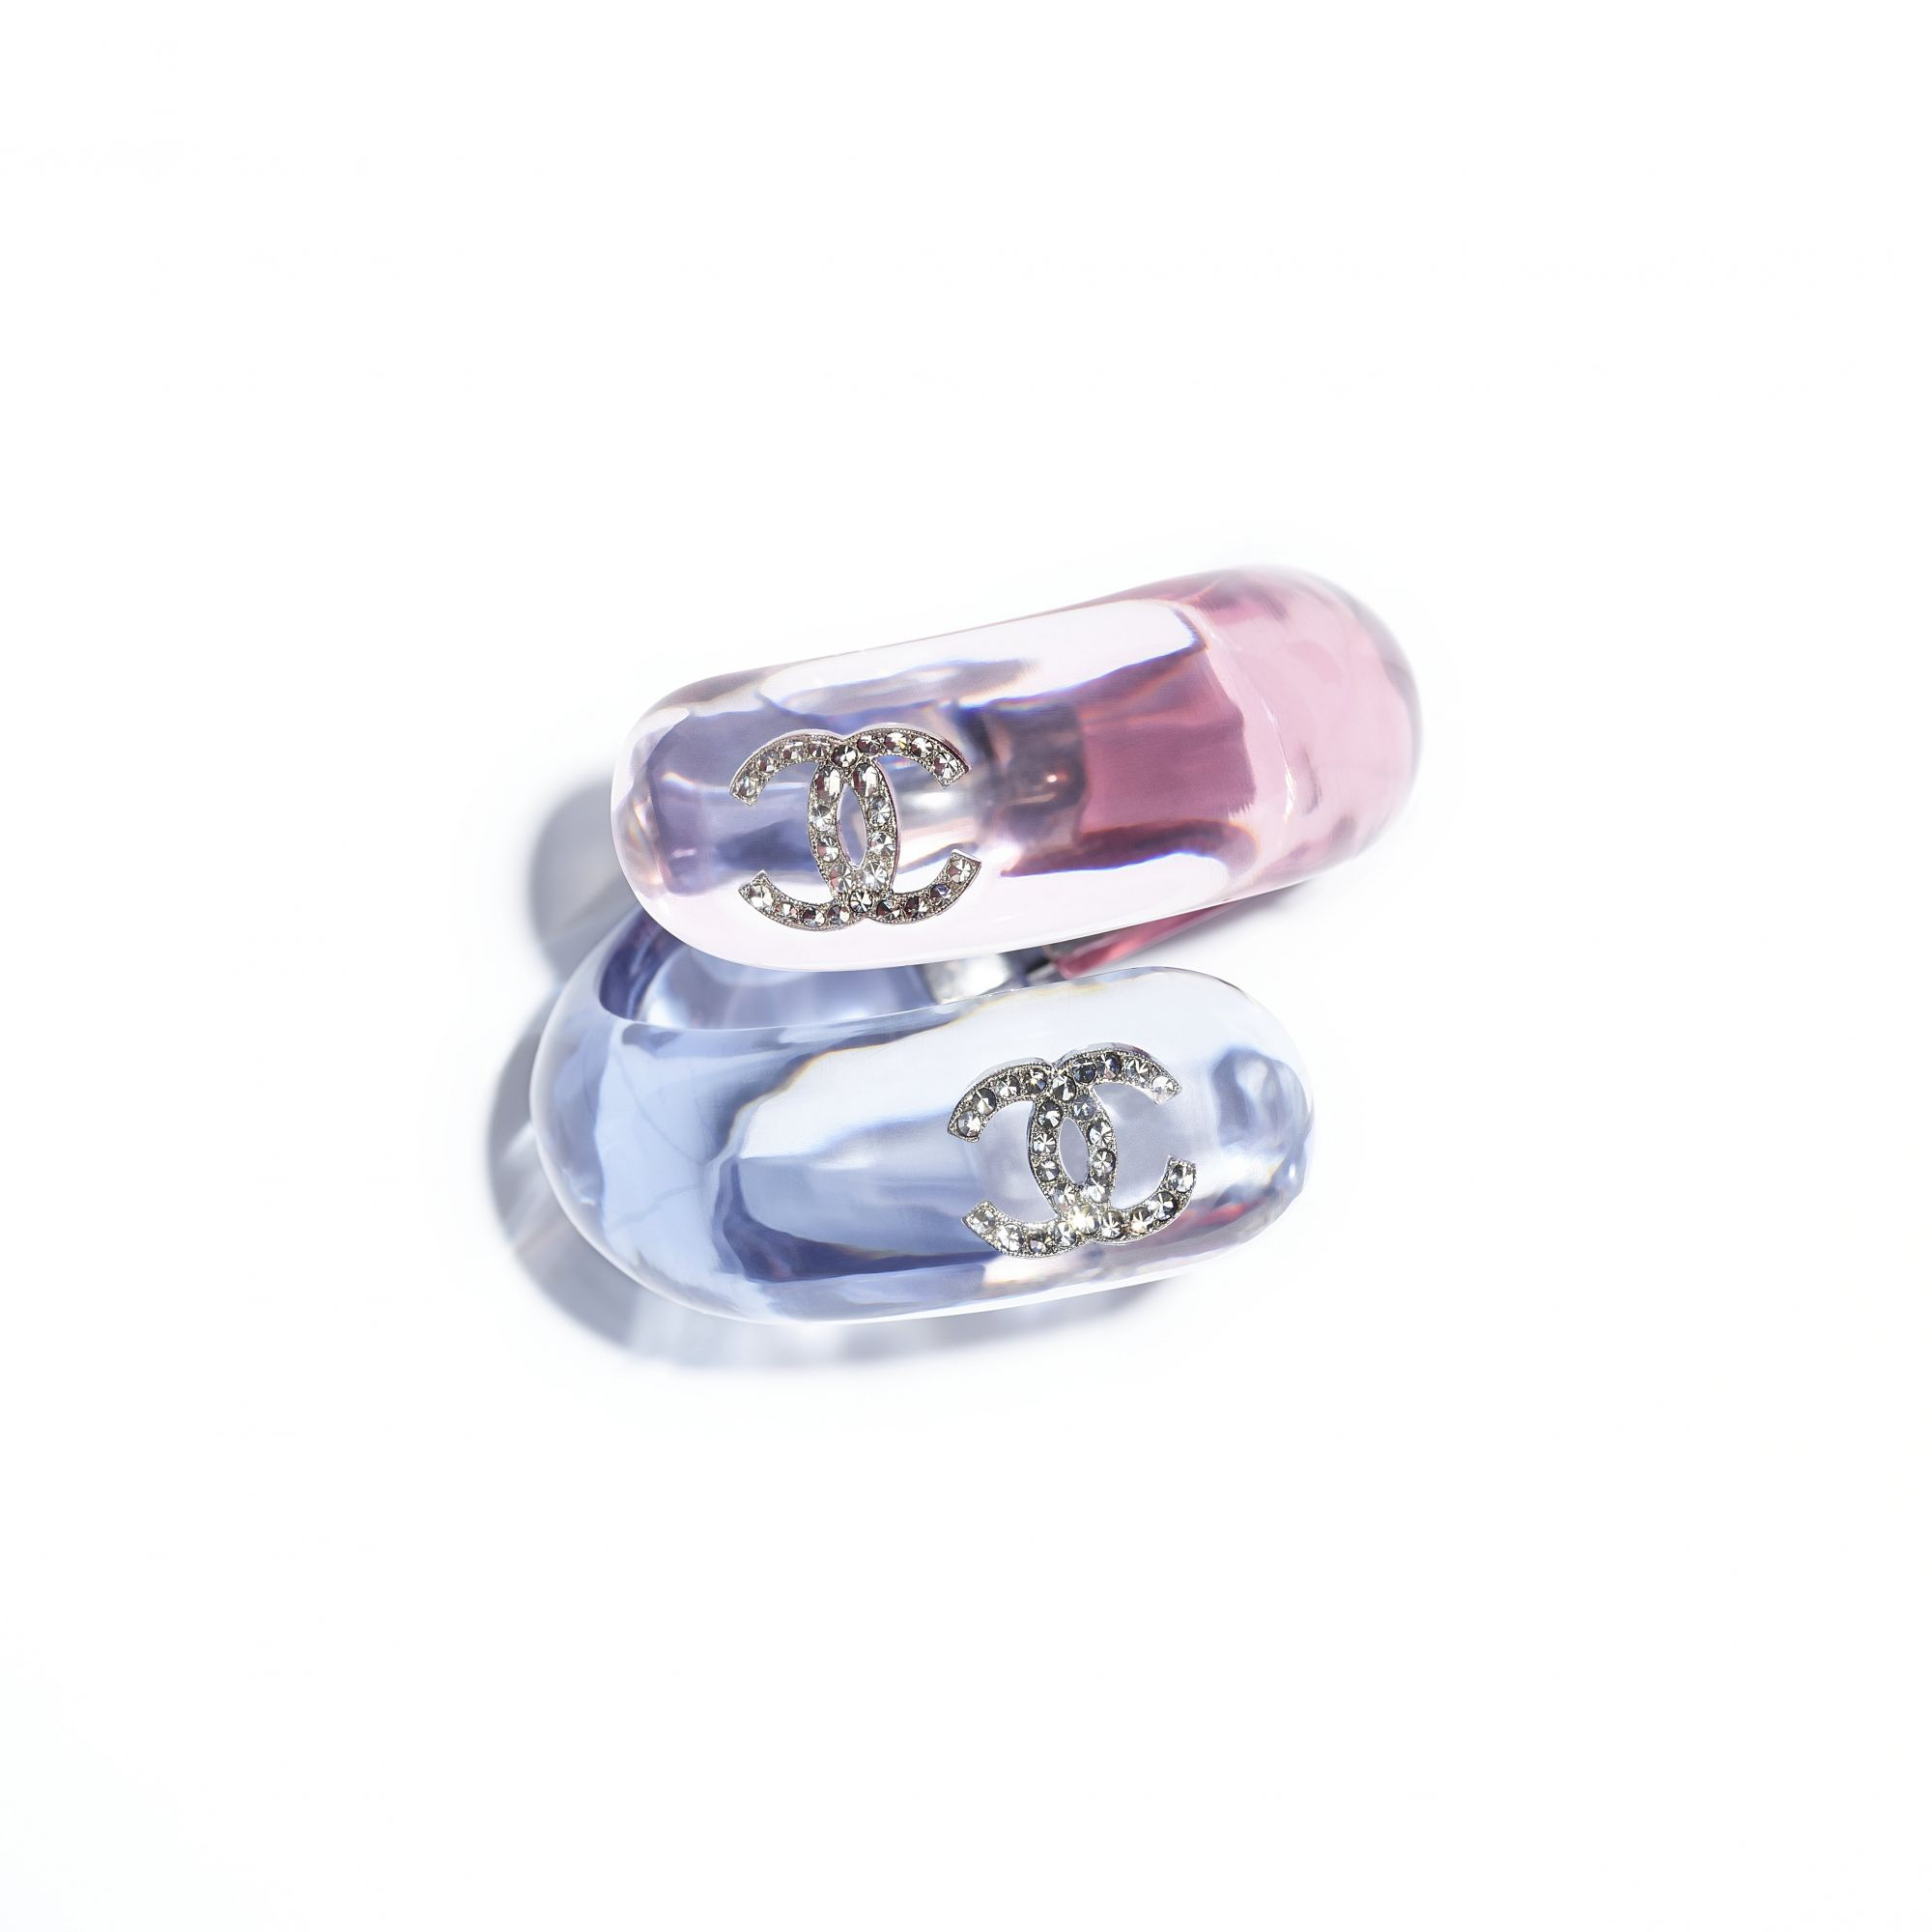 Bracelet in metal, pink and blue resin and strass